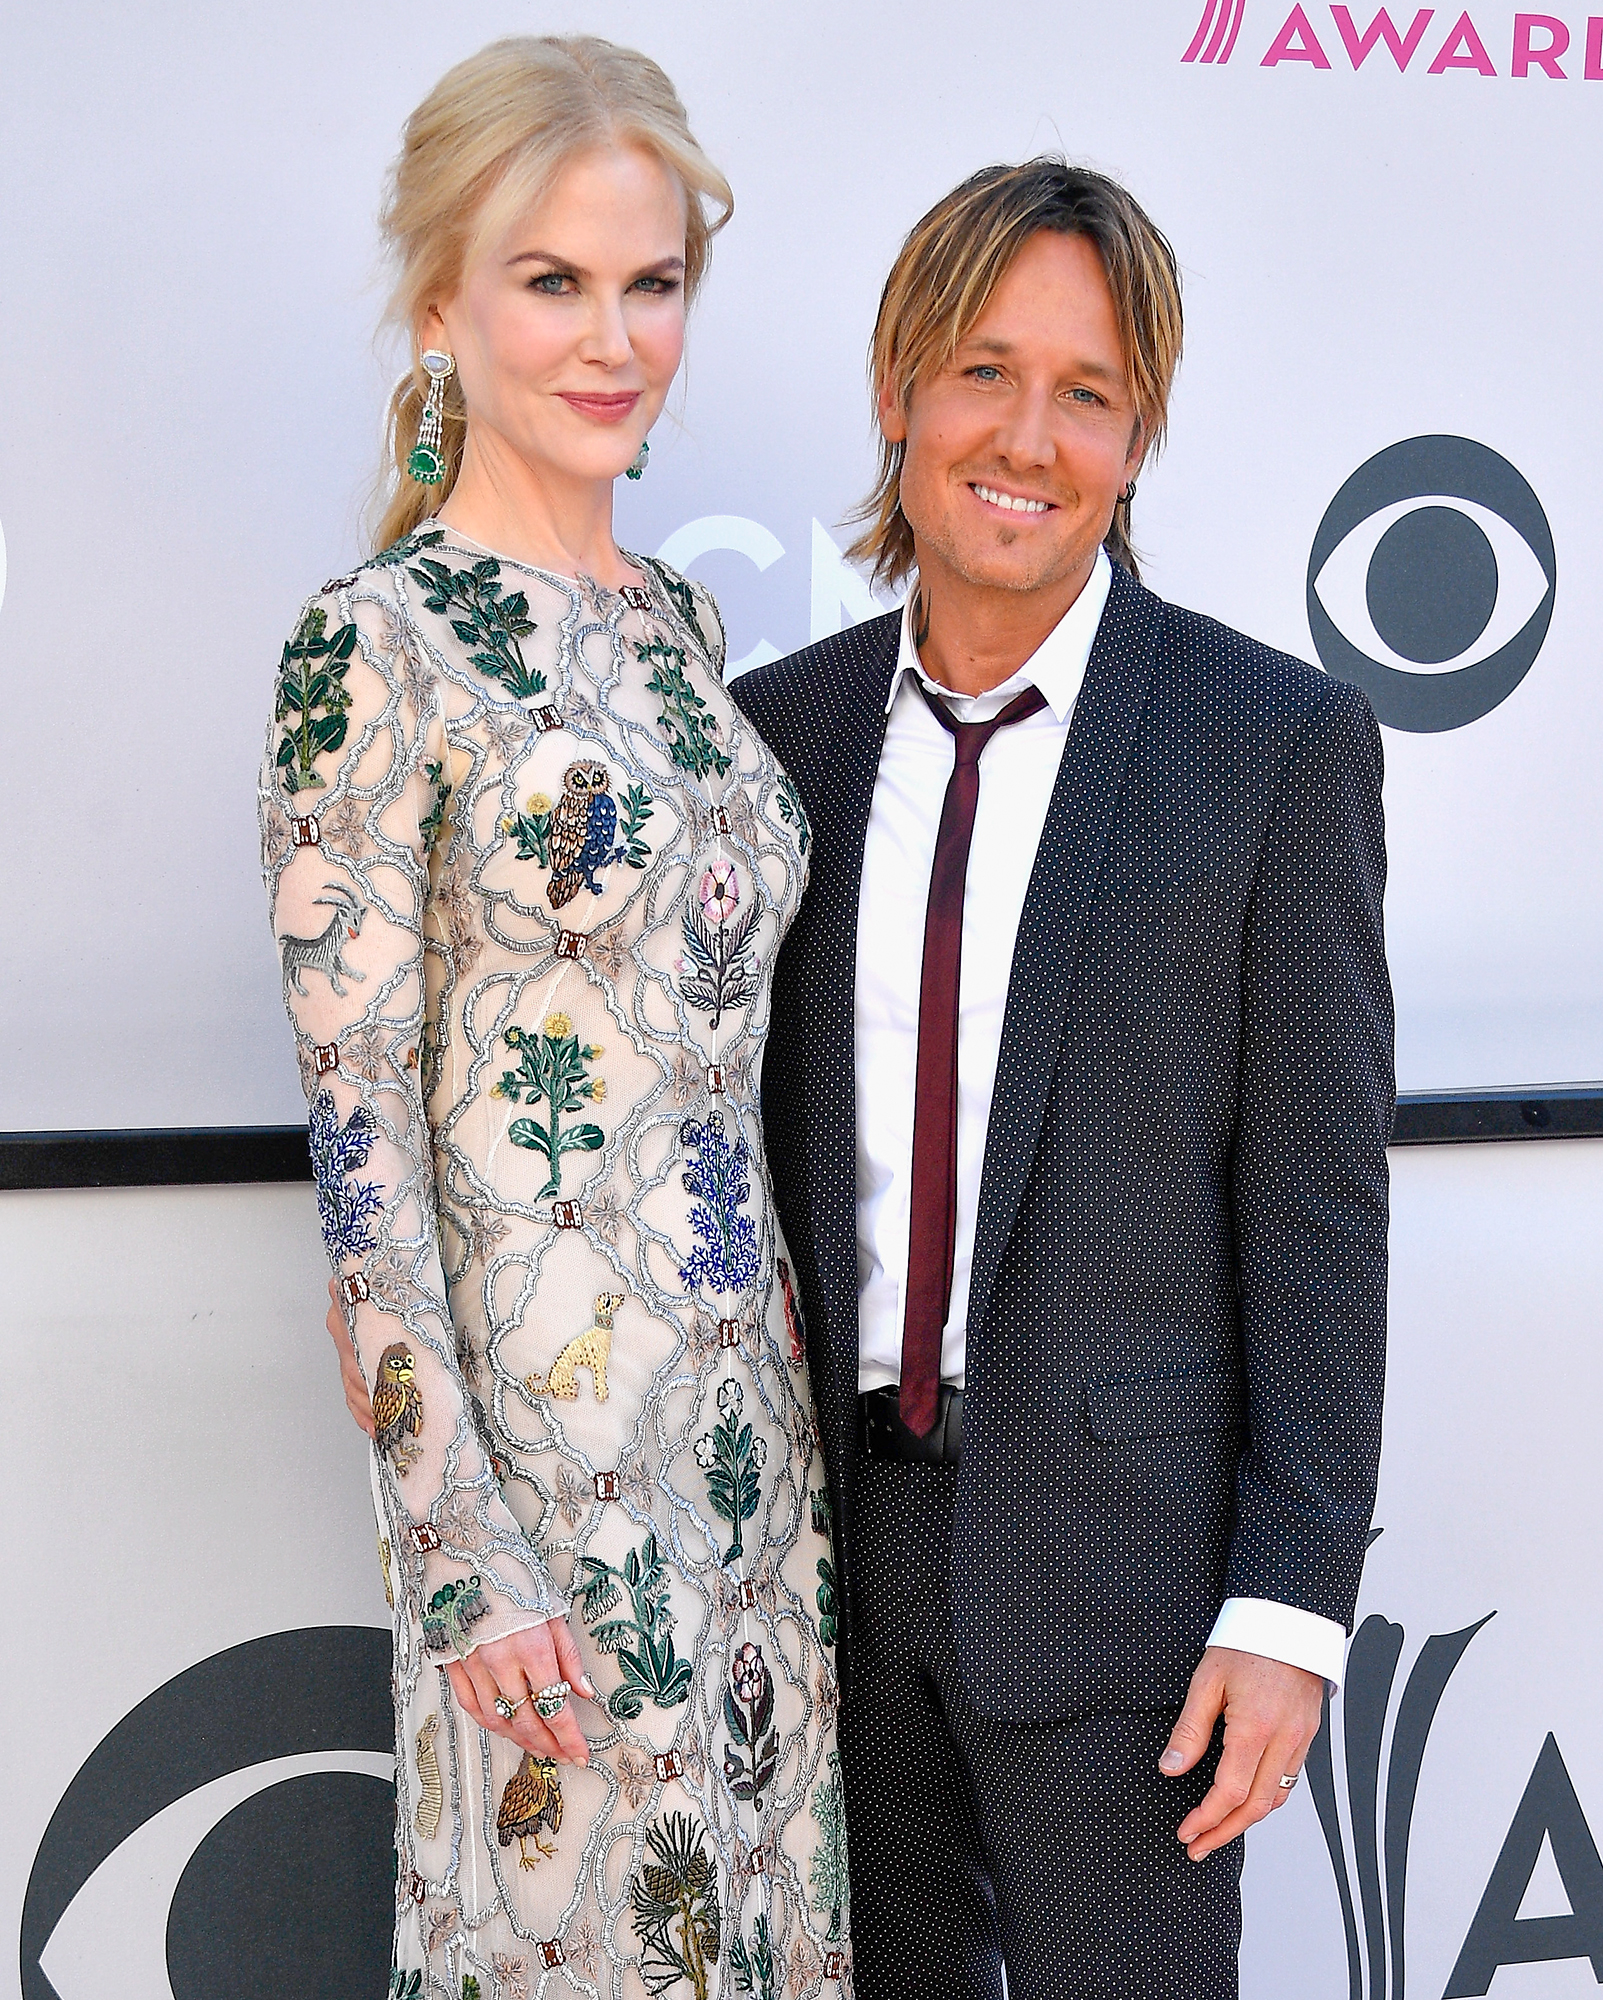 Nicole Kidman 'Started to Cry' When She Learned Keith Urban's 'The Fighter' Is About Her: It's a 'Beautiful' Gift